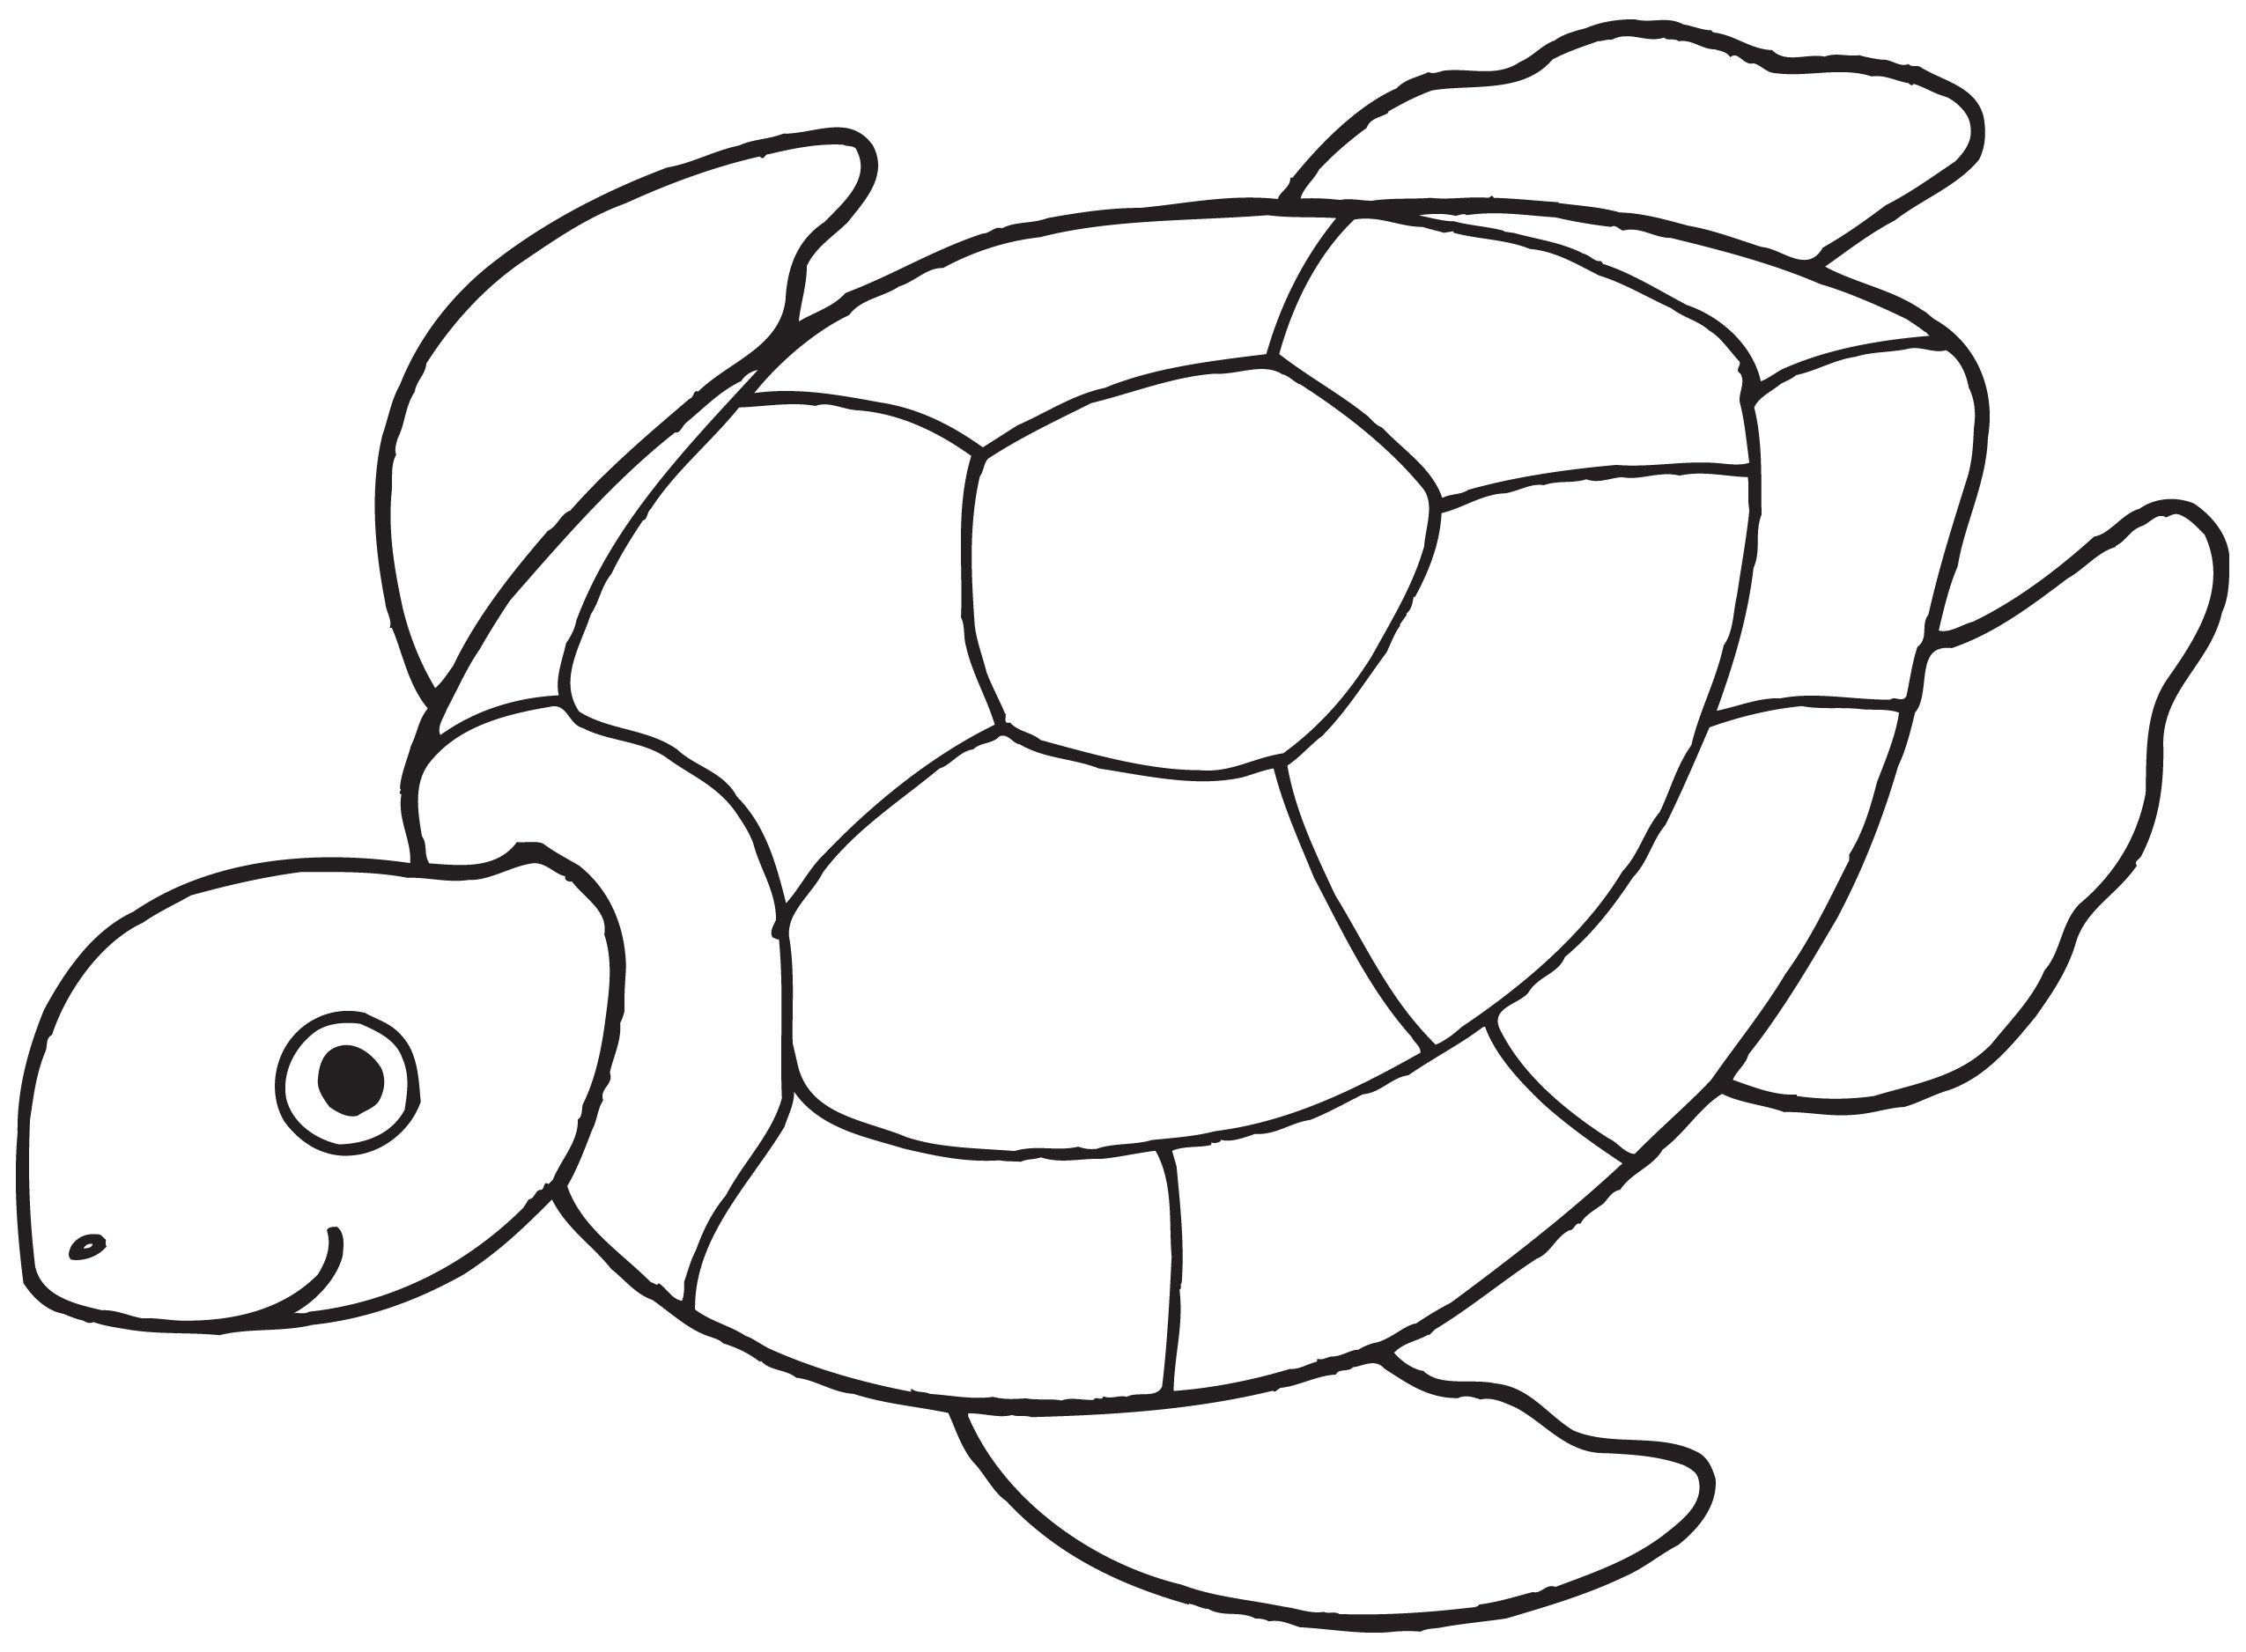 Sea Turtles Drawings Step By Step